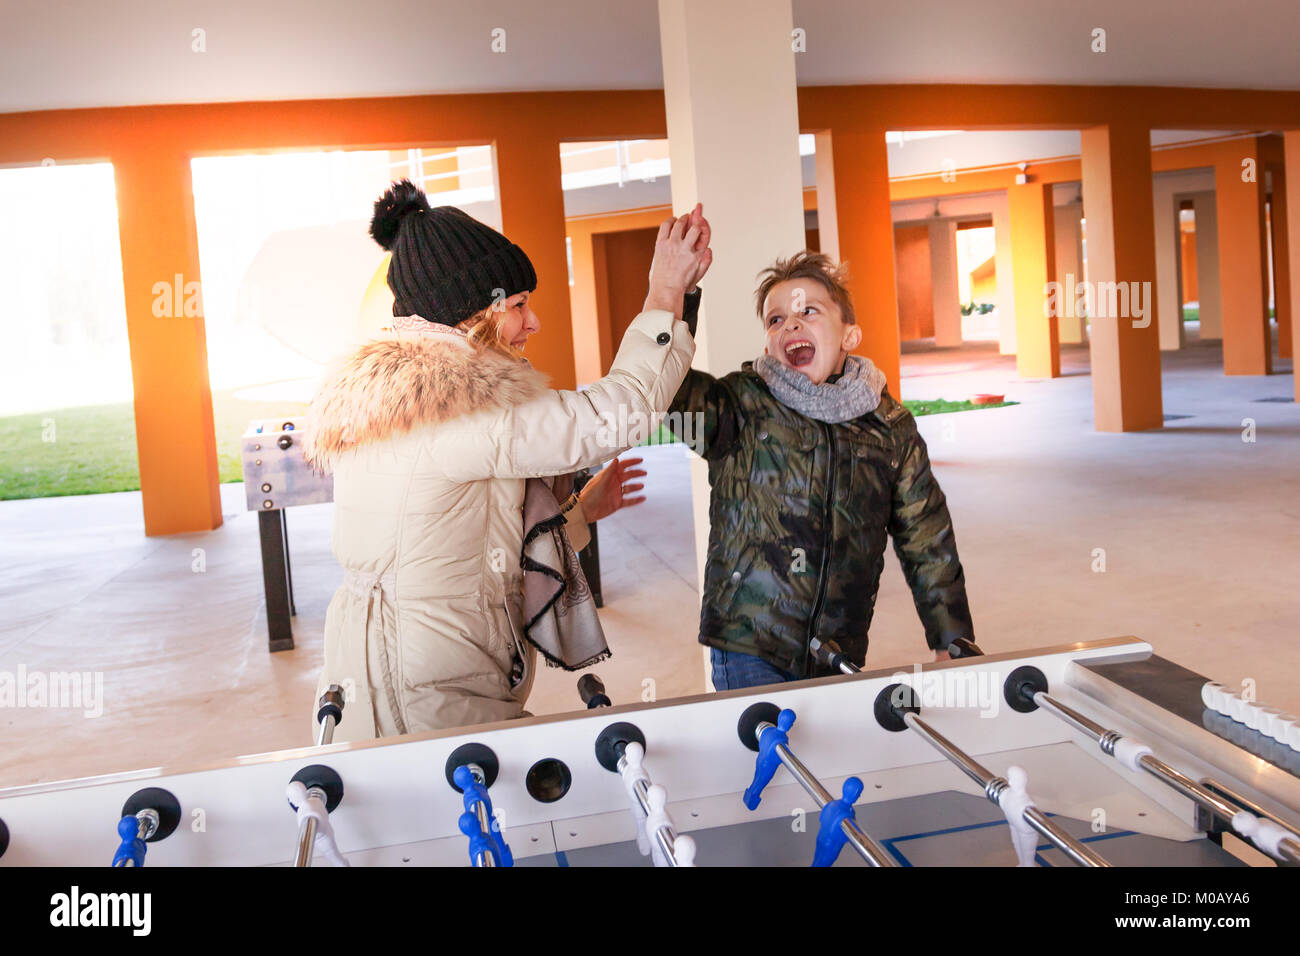 mother and son exulting after victory in the game of table football. concept of people having fun - Stock Image